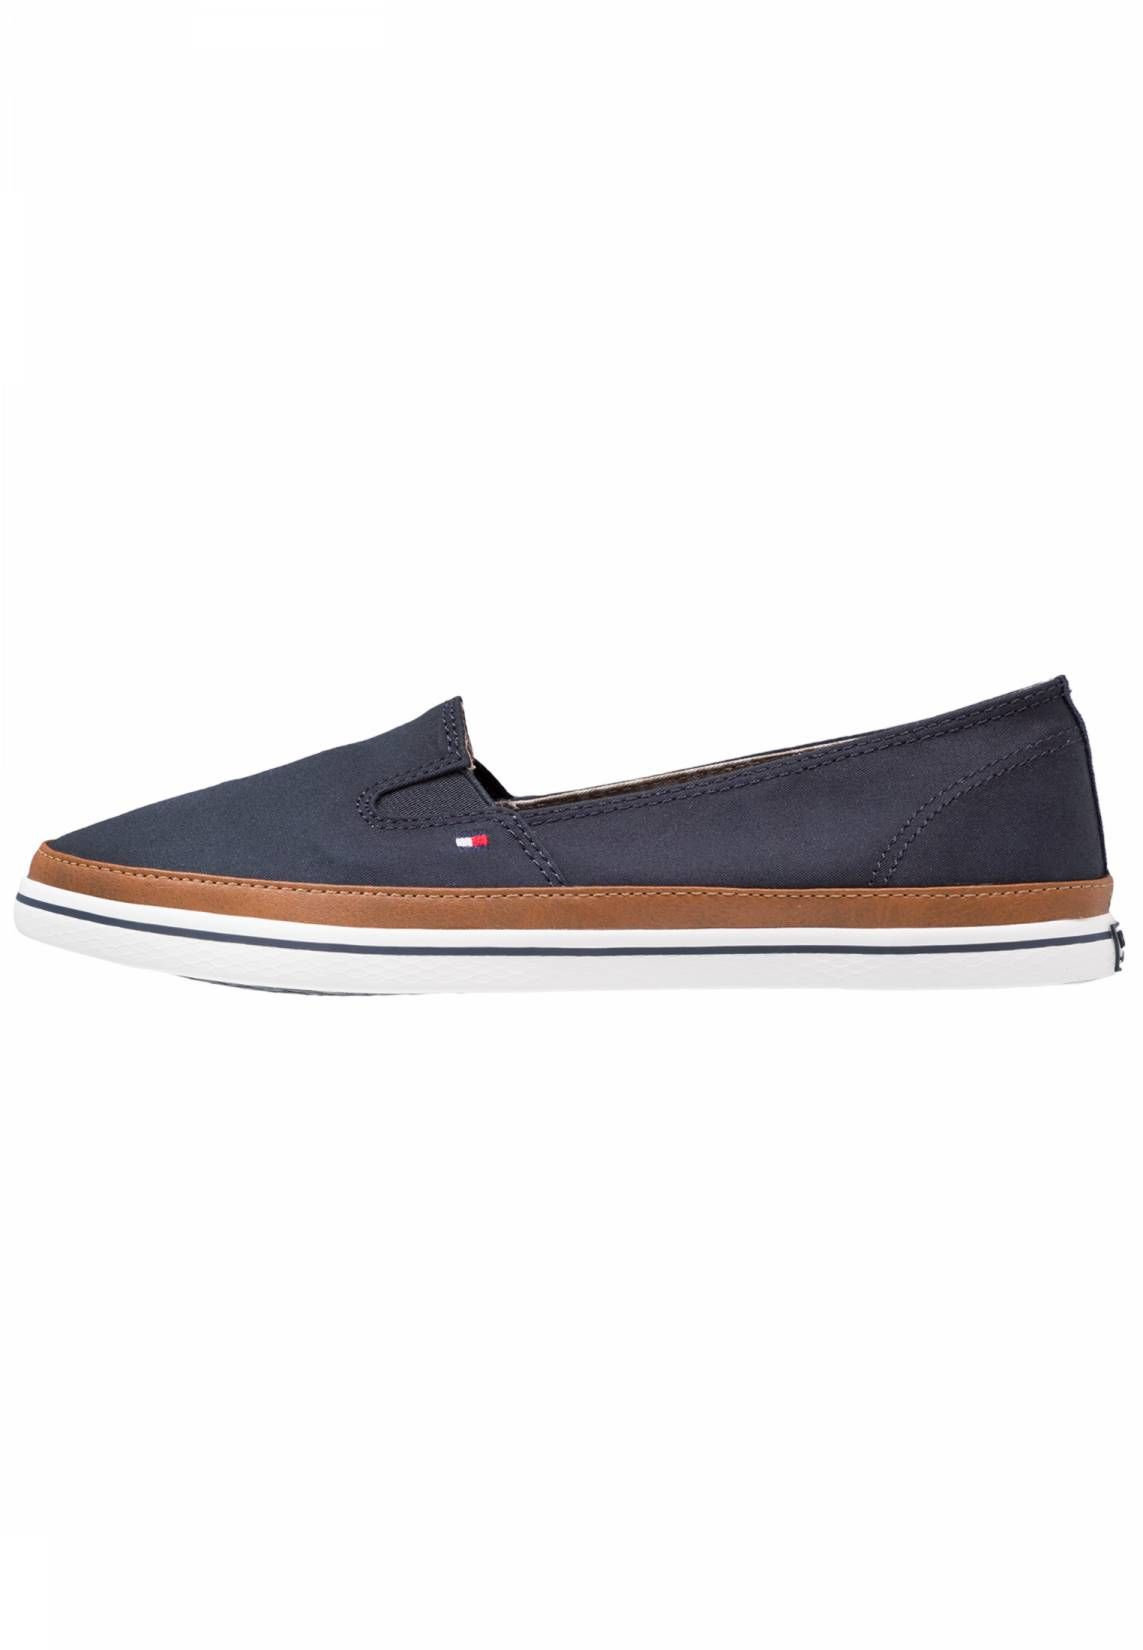 3d749f40b428f Tommy Hilfiger. Slip-ons - dark blue. Sole synthetics. Shoe tip